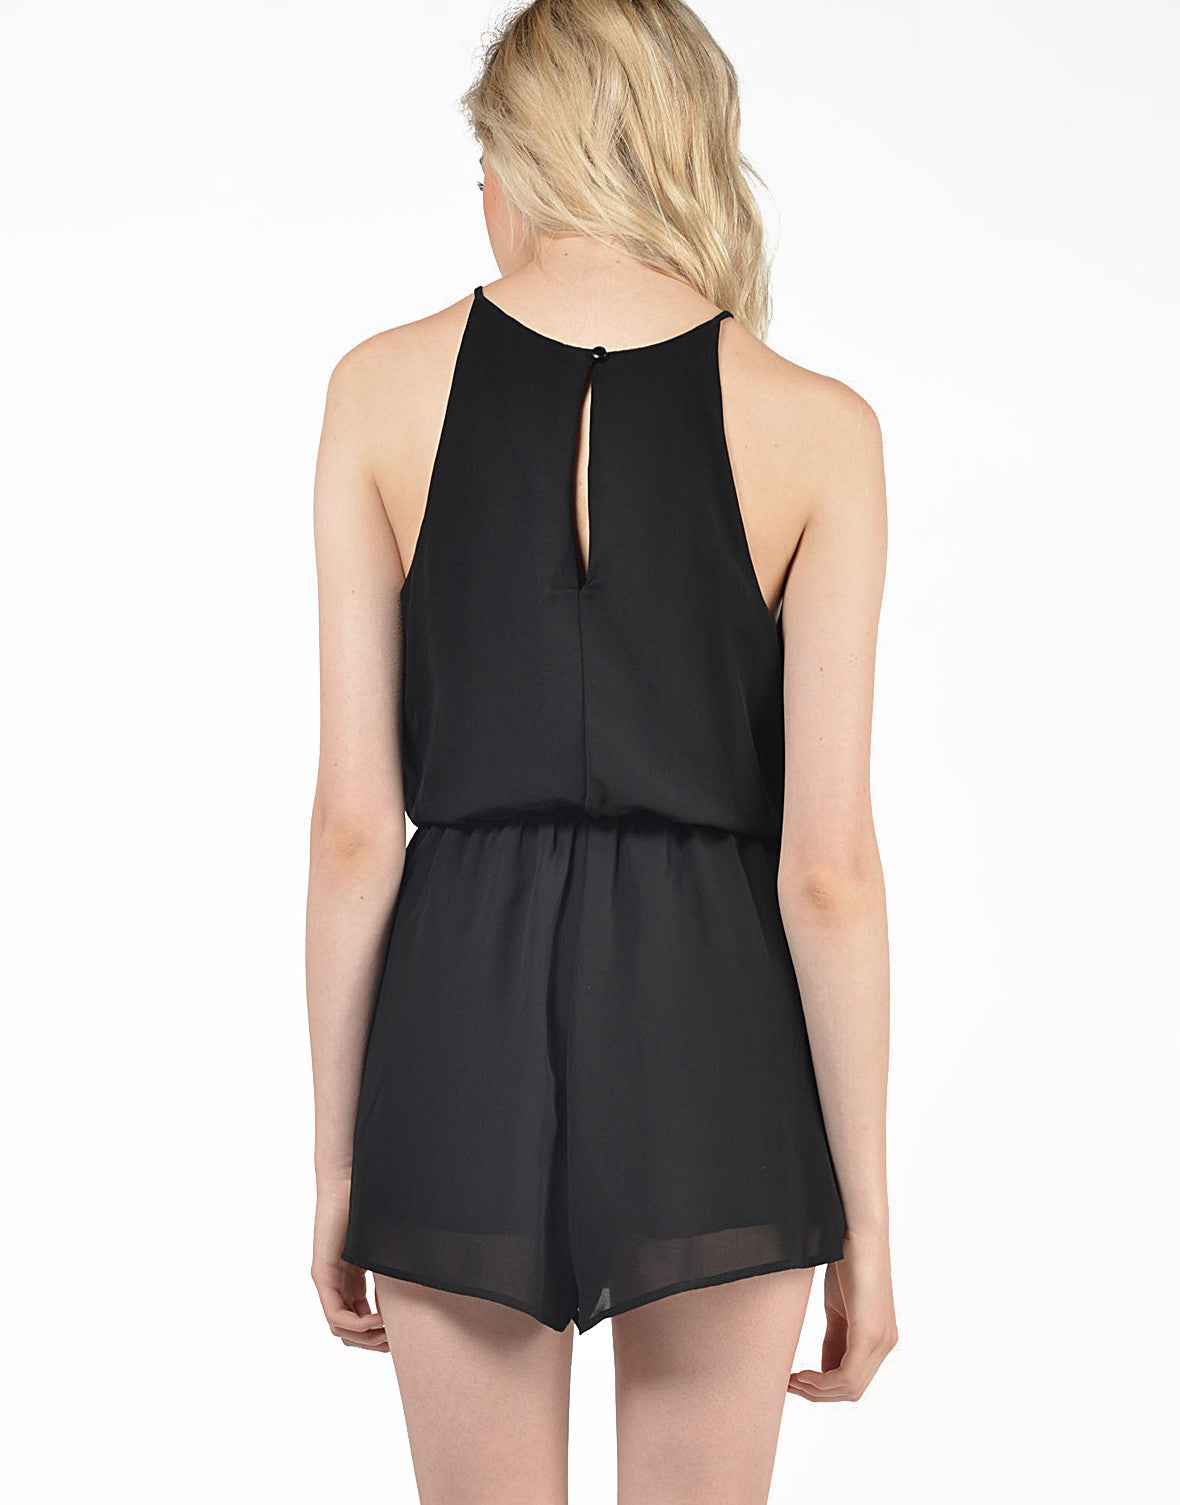 Back View of Chiffon High Neck Romper